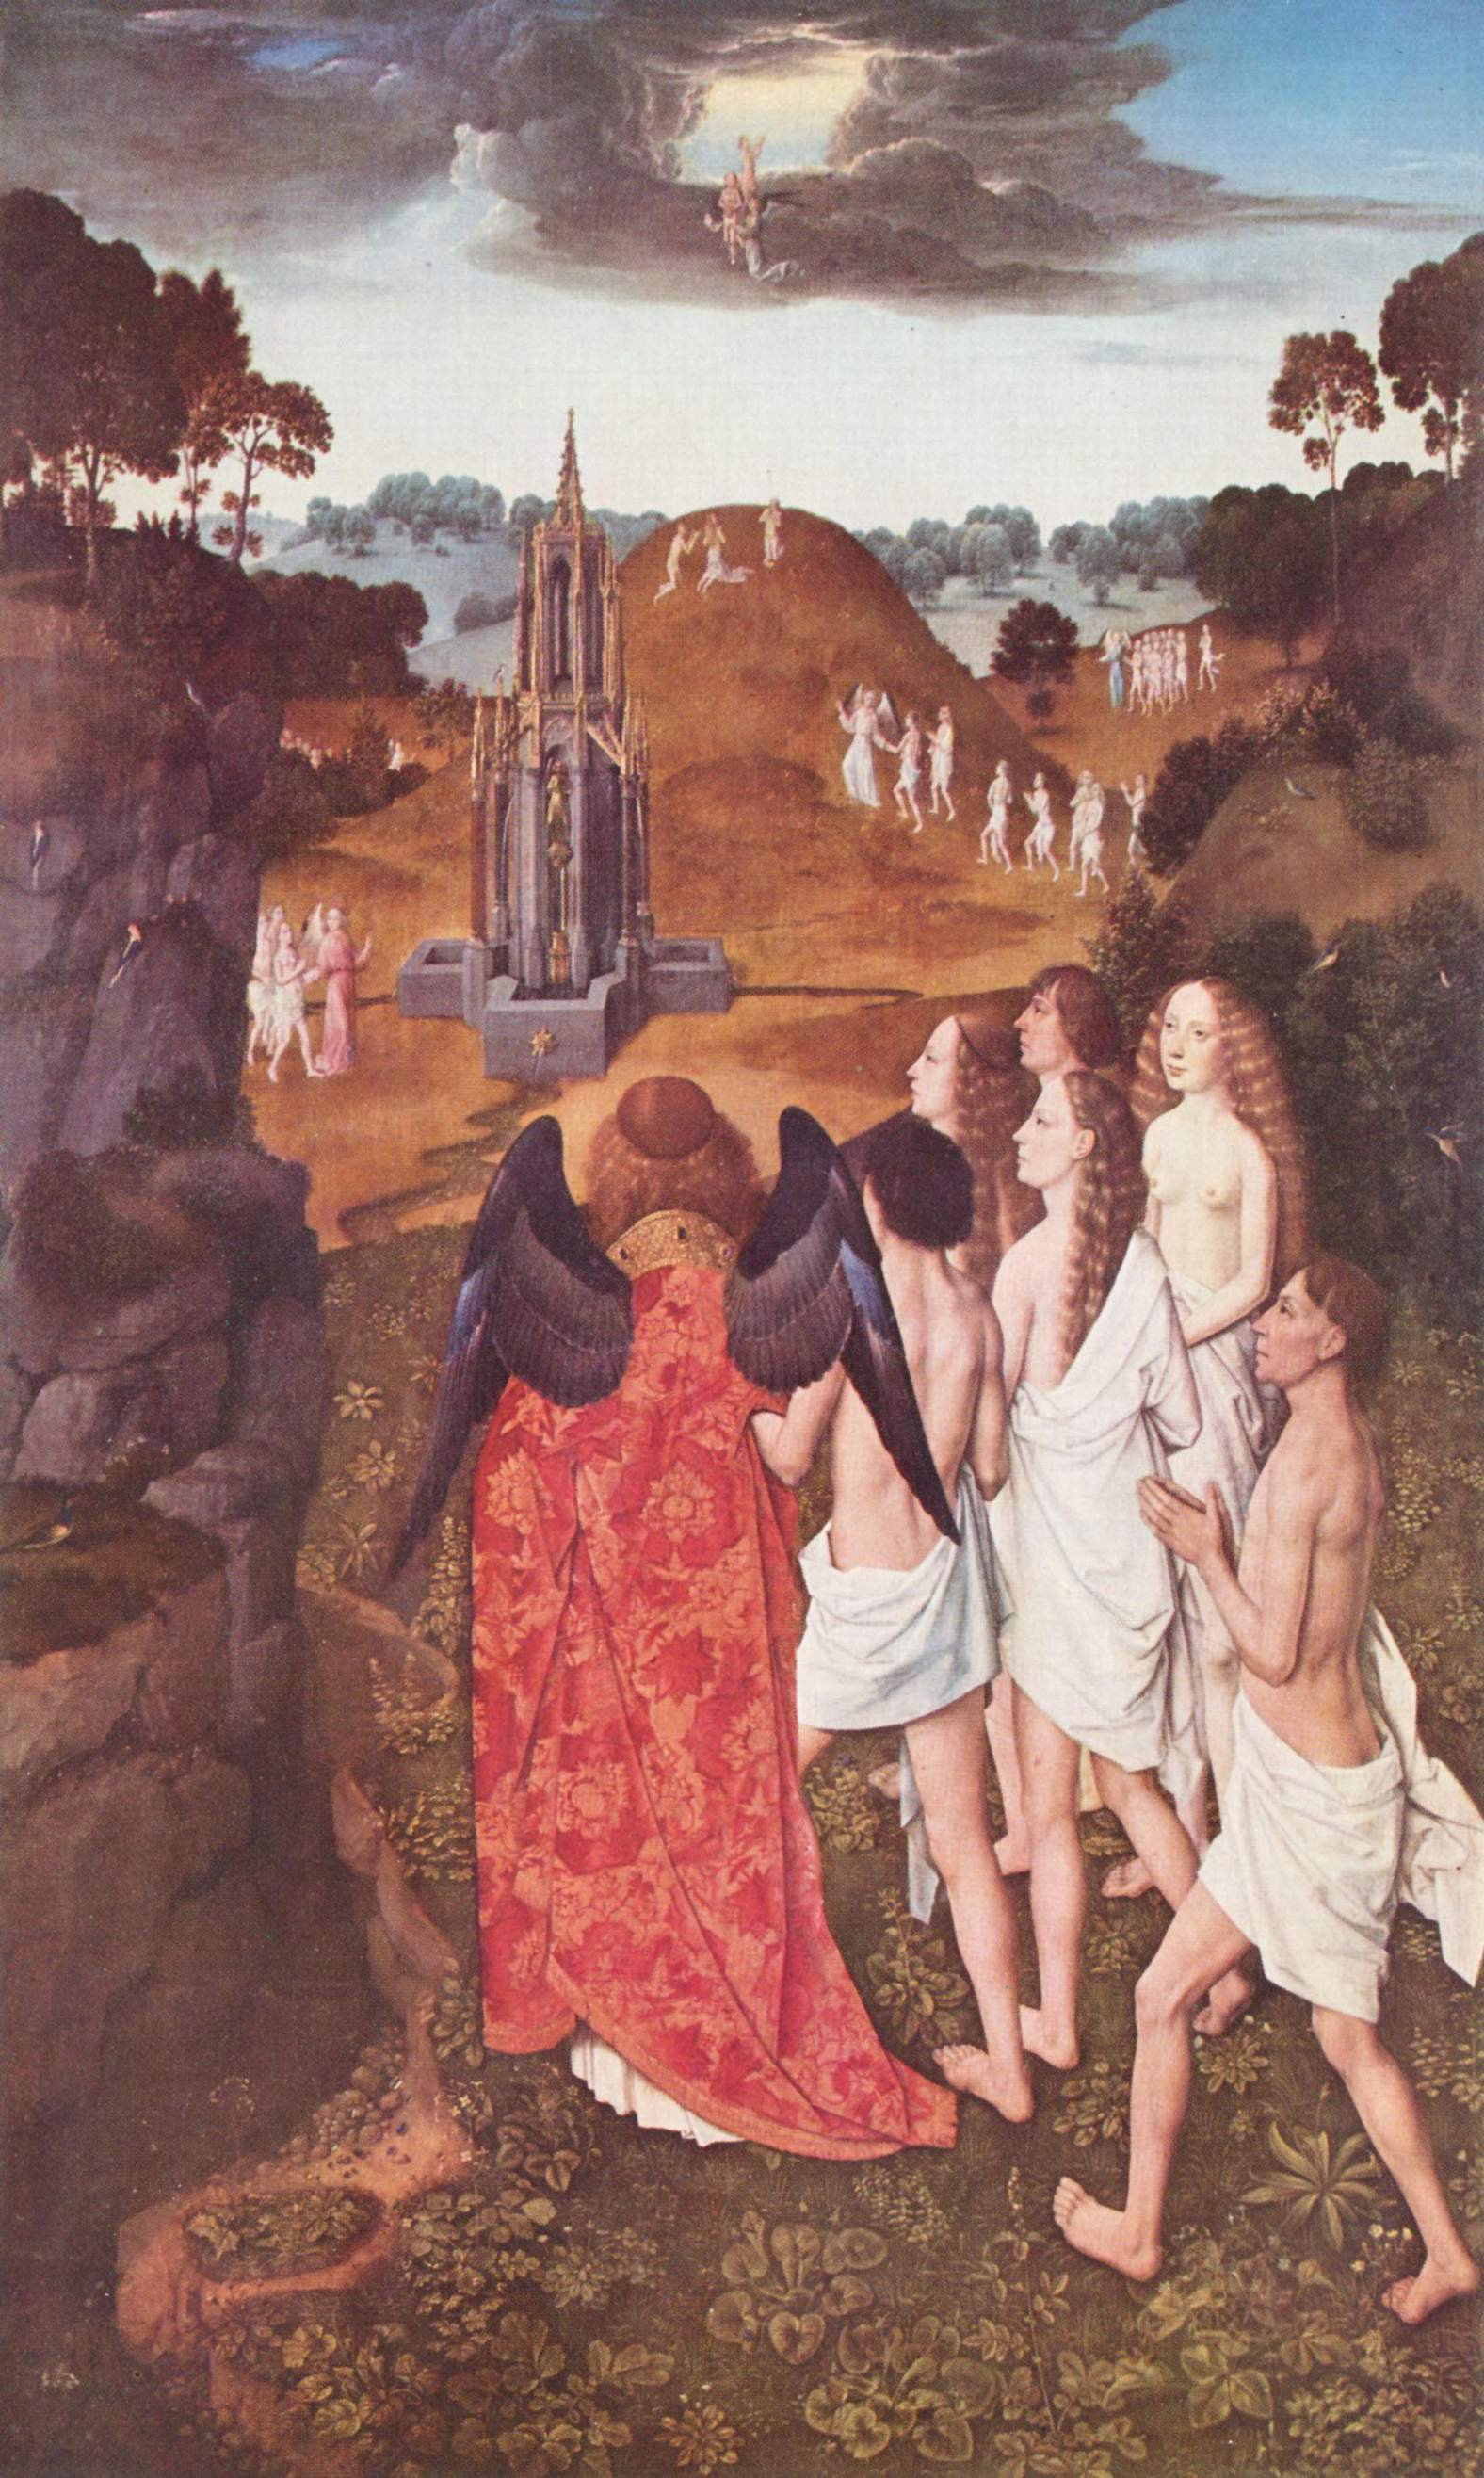 The way to Paradise, 1468